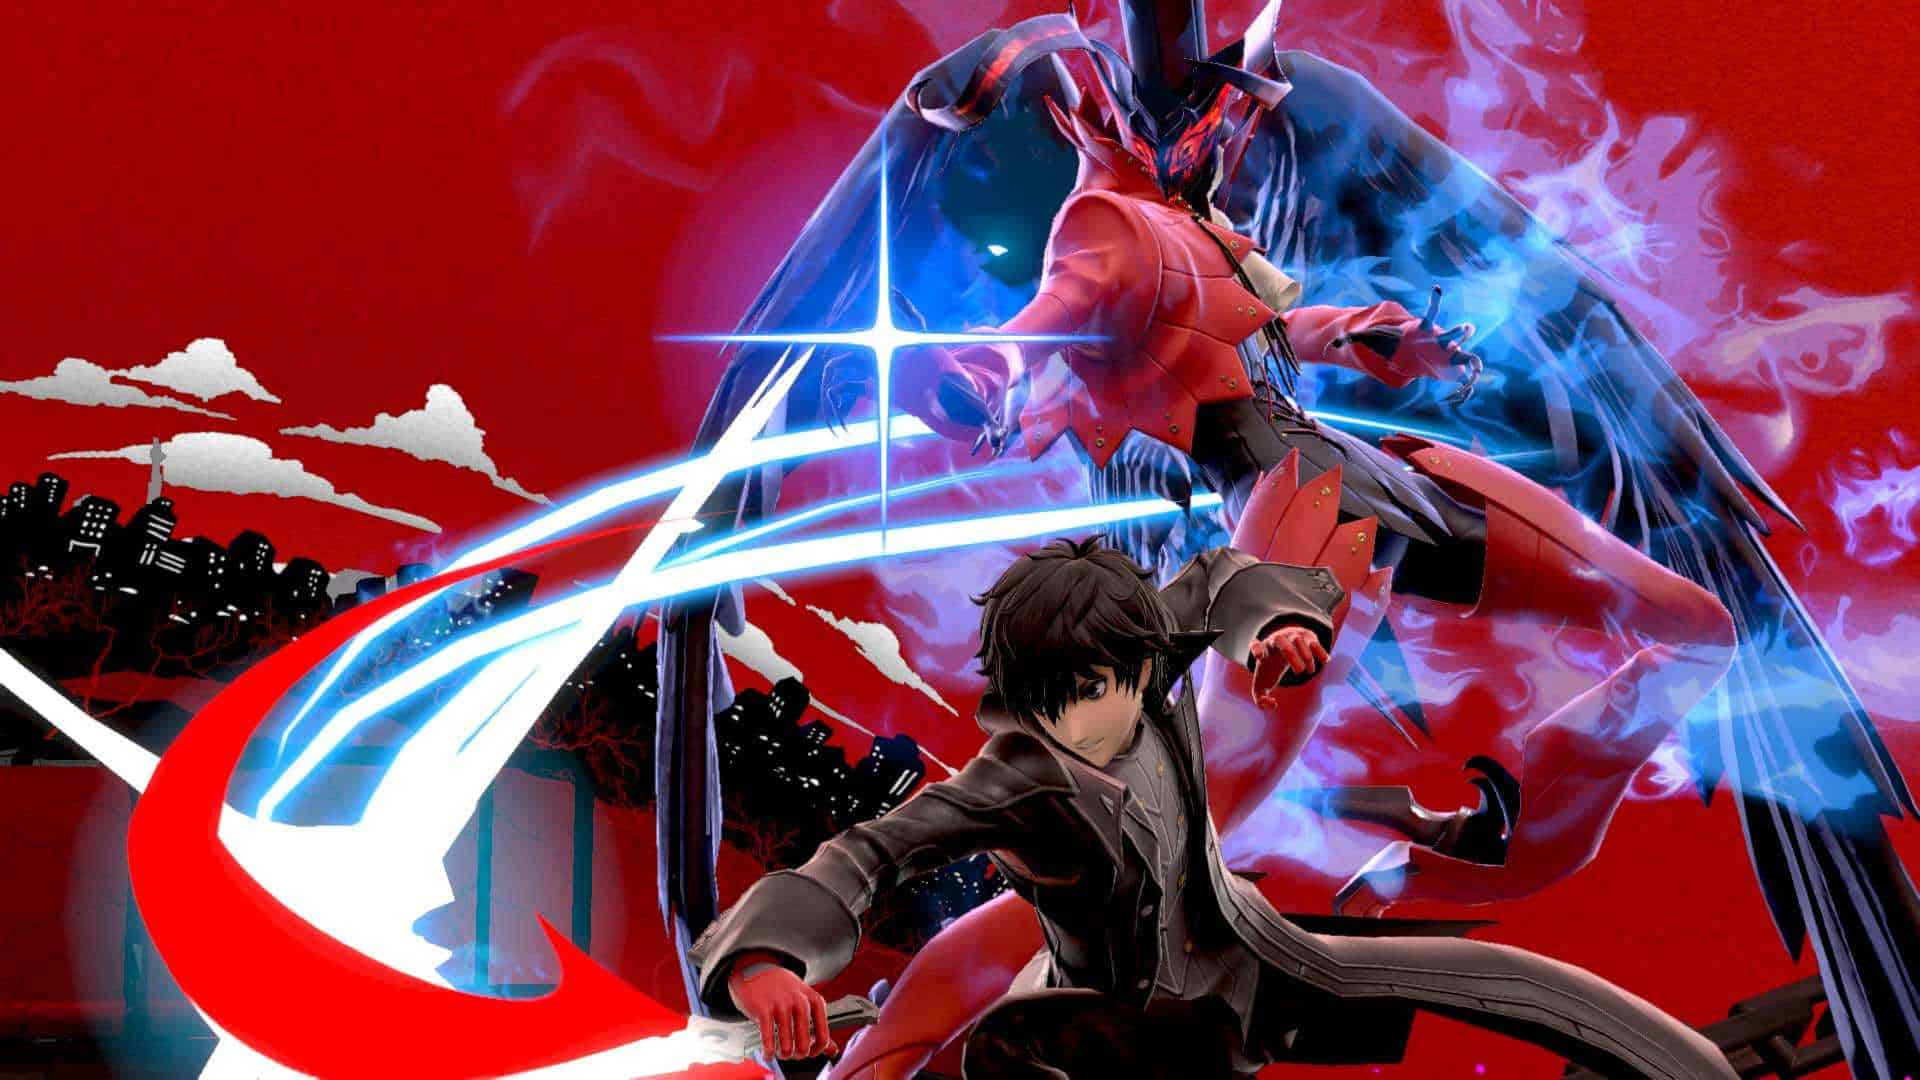 Joker From Persona 5 Joins The Battle In Super Smash Bros Ultimate On 18th April